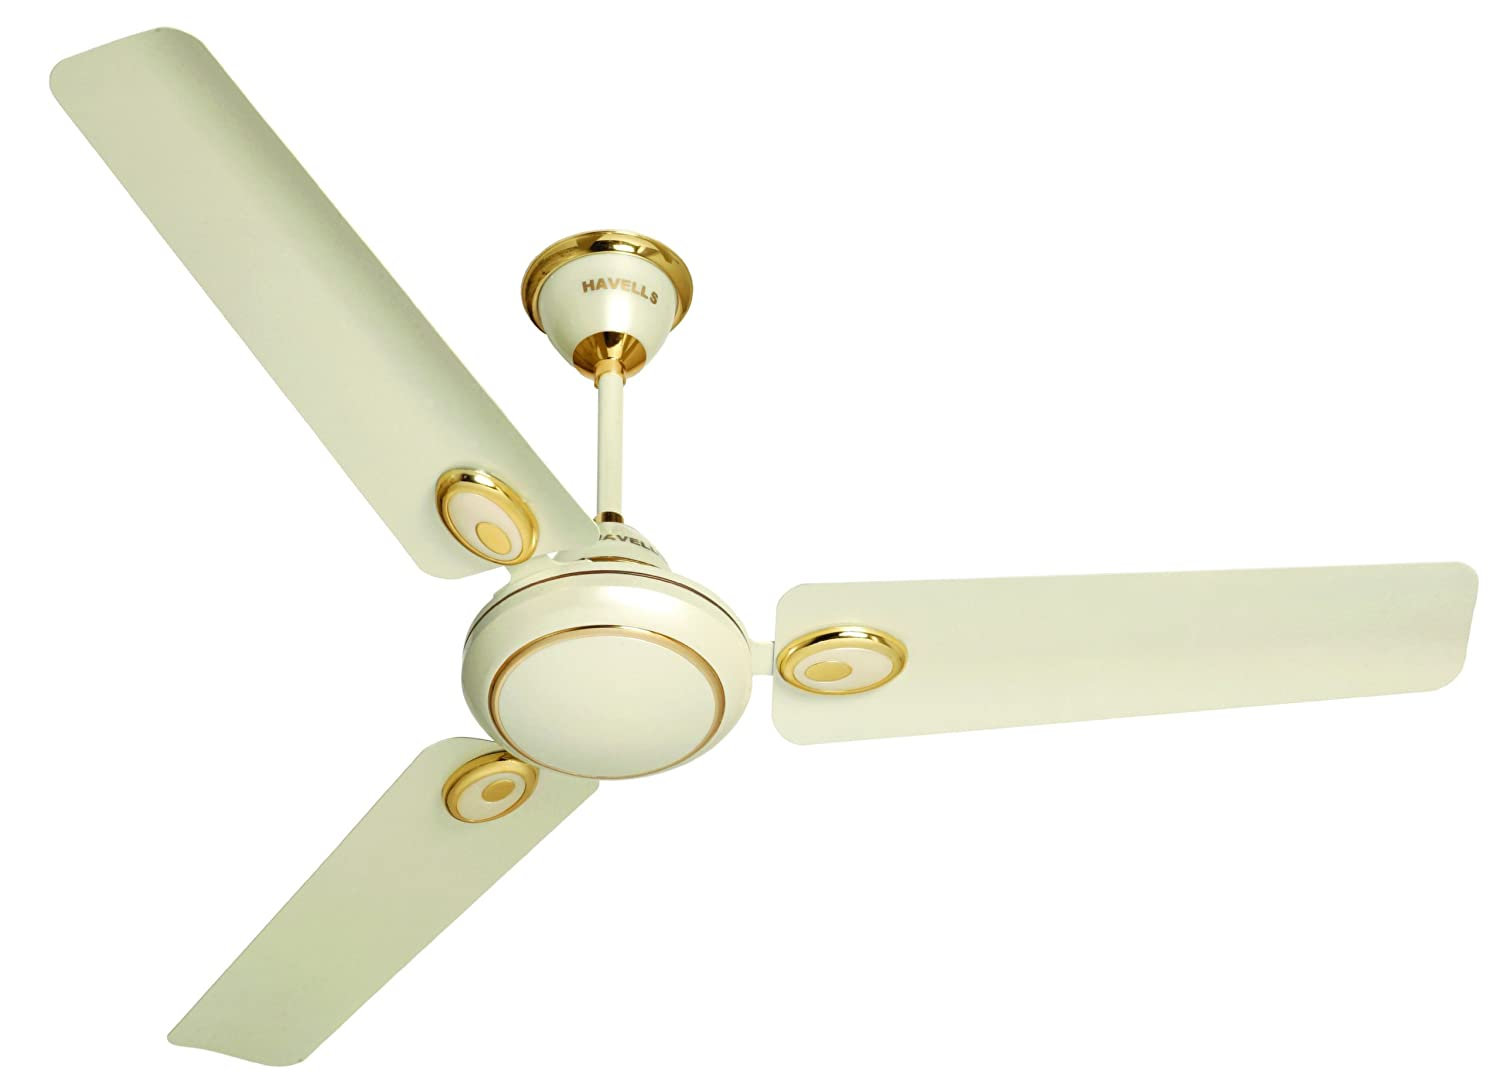 Buy havells fusion five star 1200mm ceiling fan pearl and ivory buy havells fusion five star 1200mm ceiling fan pearl and ivory online at low prices in india amazon mozeypictures Images